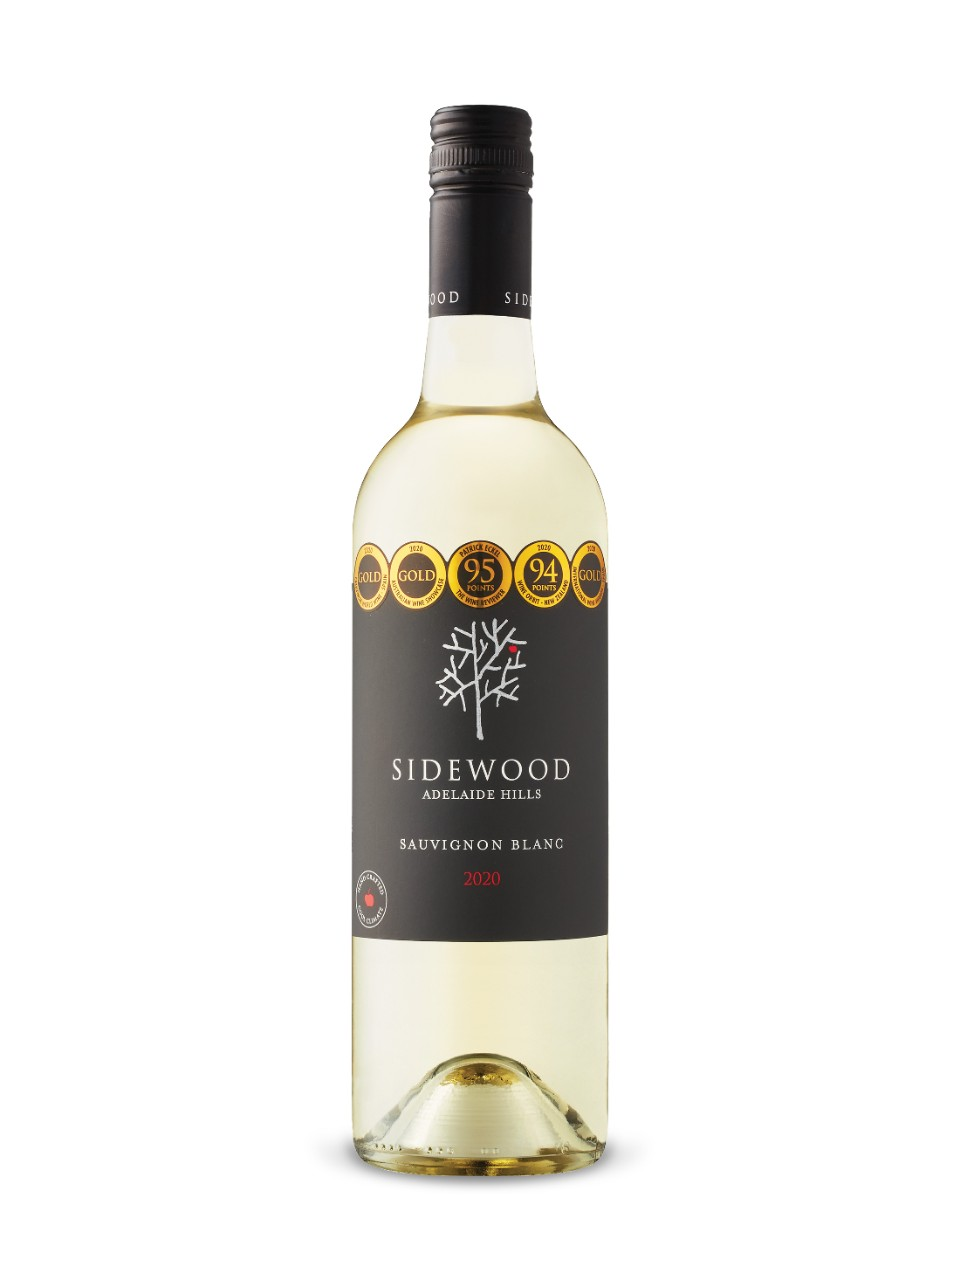 Sidewood Sauvignon Blanc 2020 from LCBO